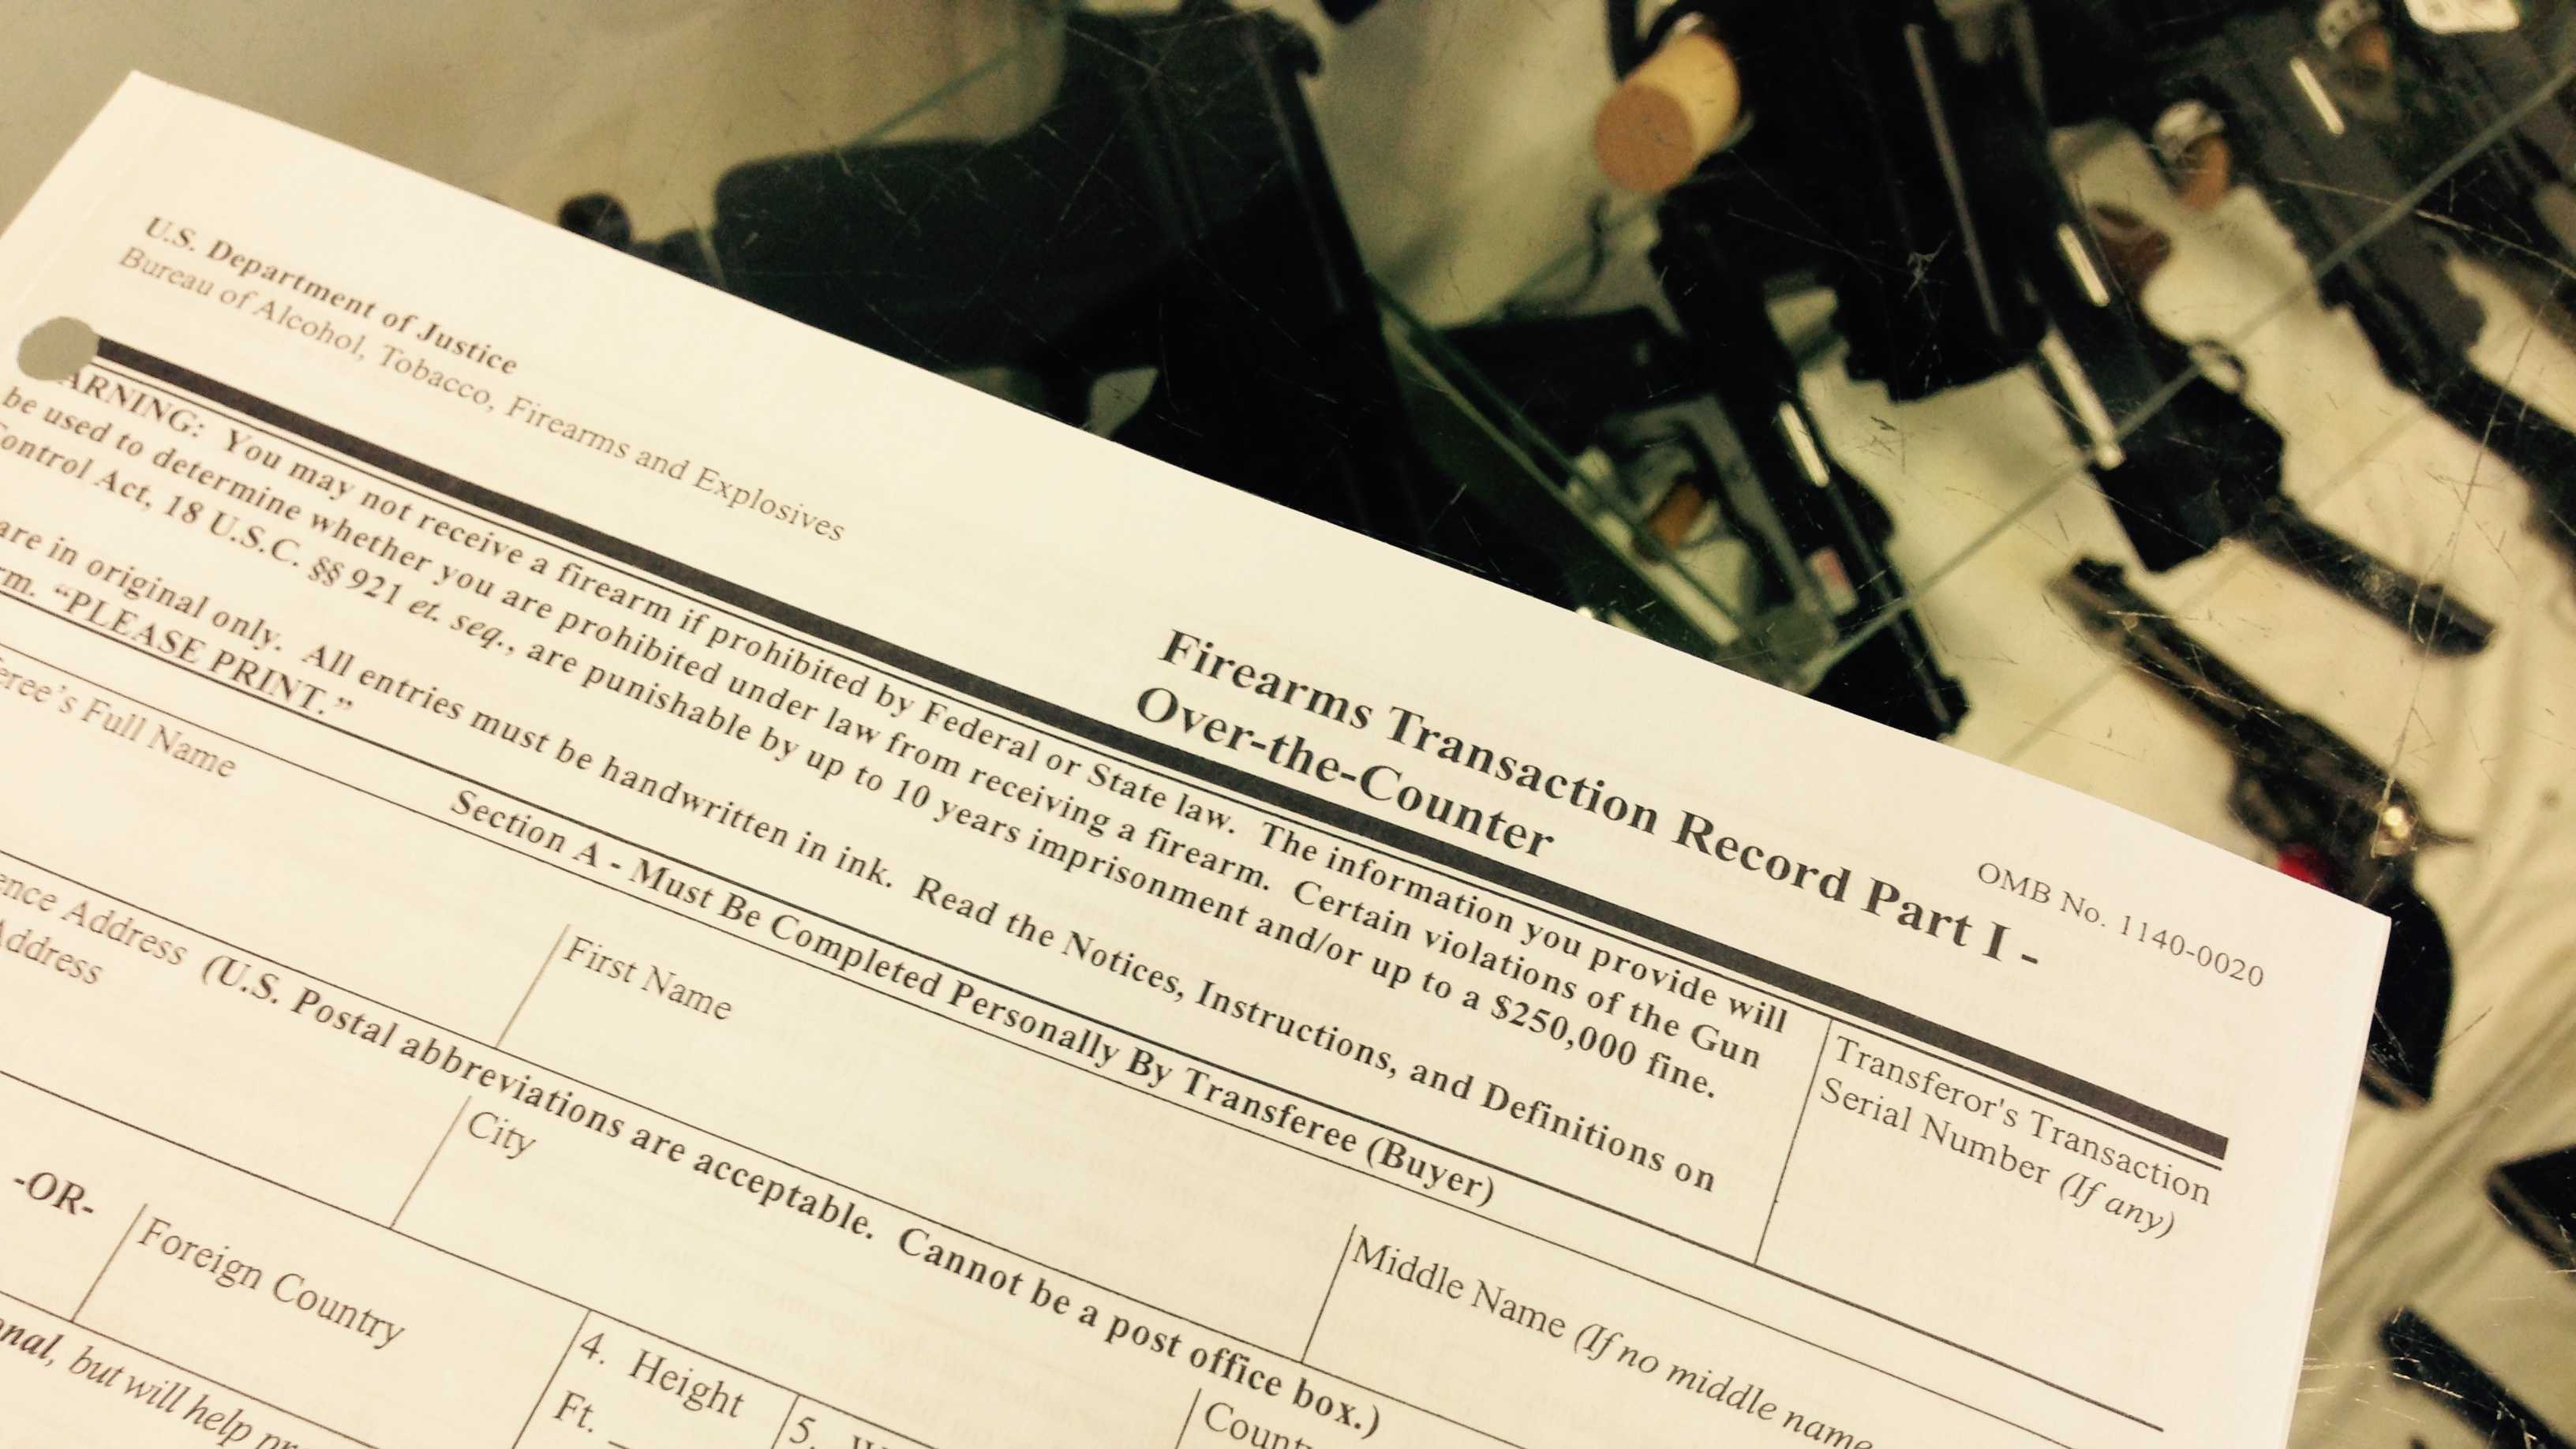 ATF form used to conduct background check before gun sales.